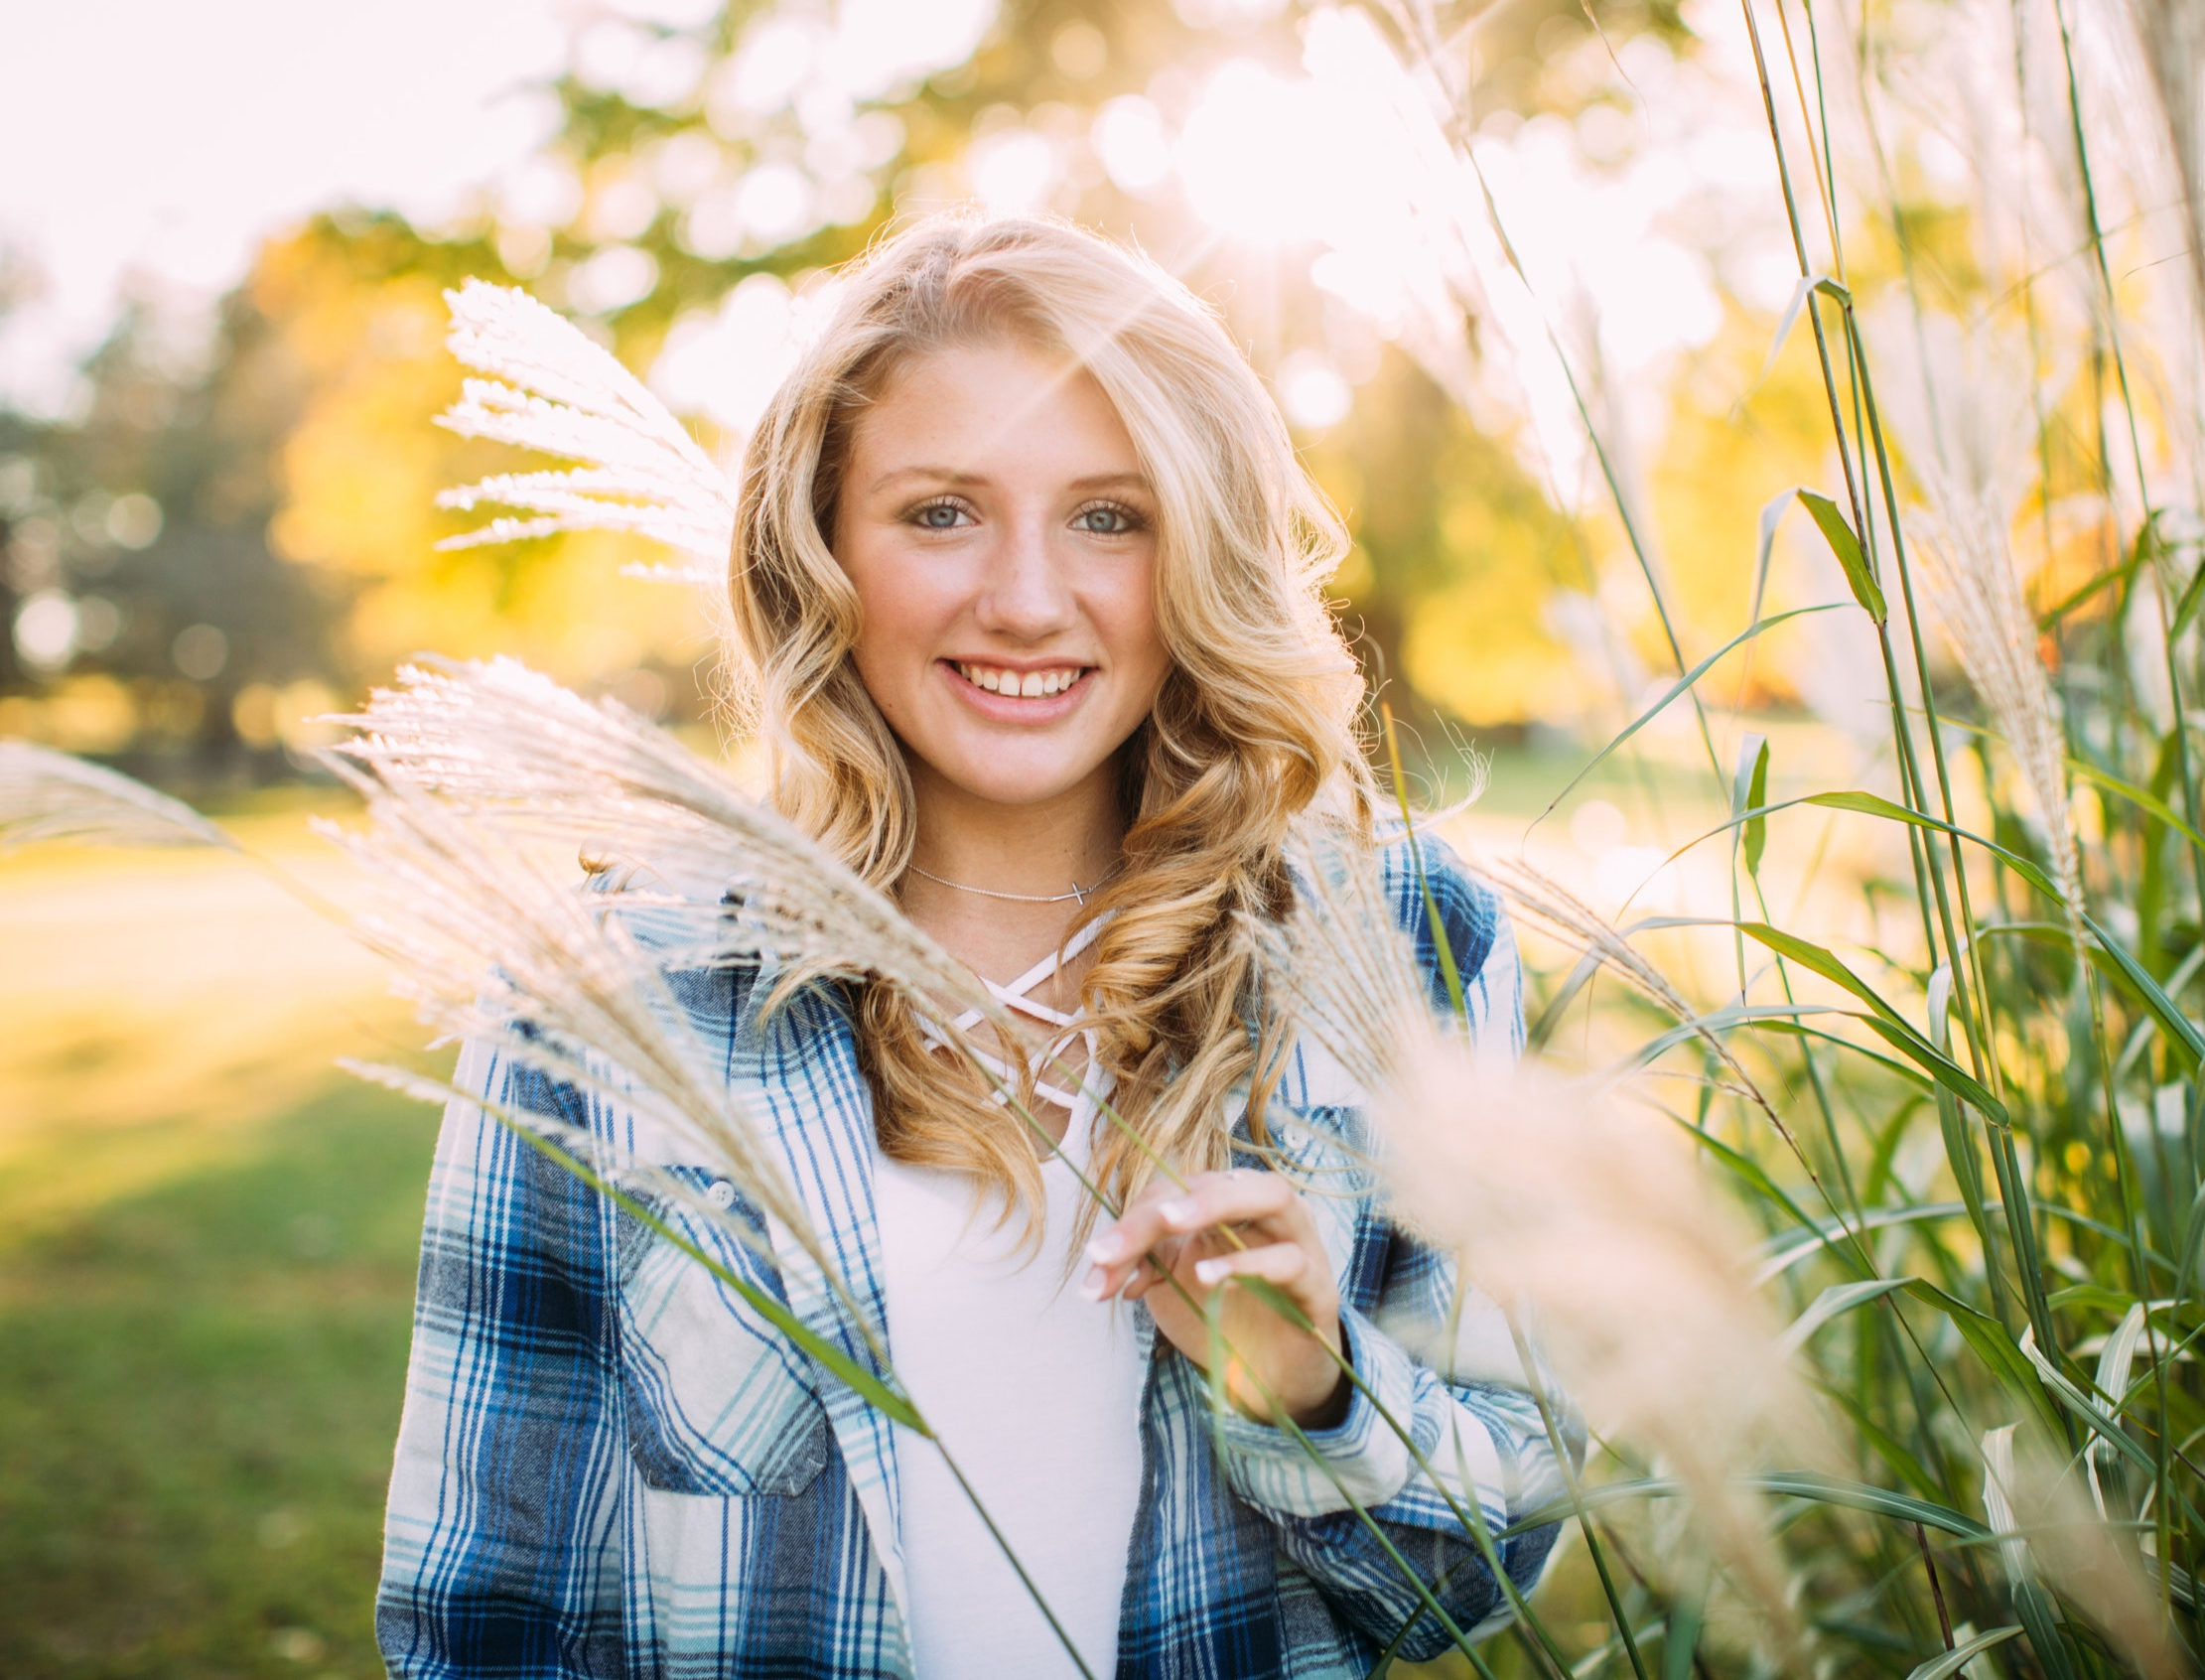 """""""Kristin is AMAZING"""" - Kristin is AMAZING! She did my senior pictures and I'm still in love with them. She's very easy to work with and makes the session so fun!! I highly recommend her!!- Jenna, West Mifflin PA"""